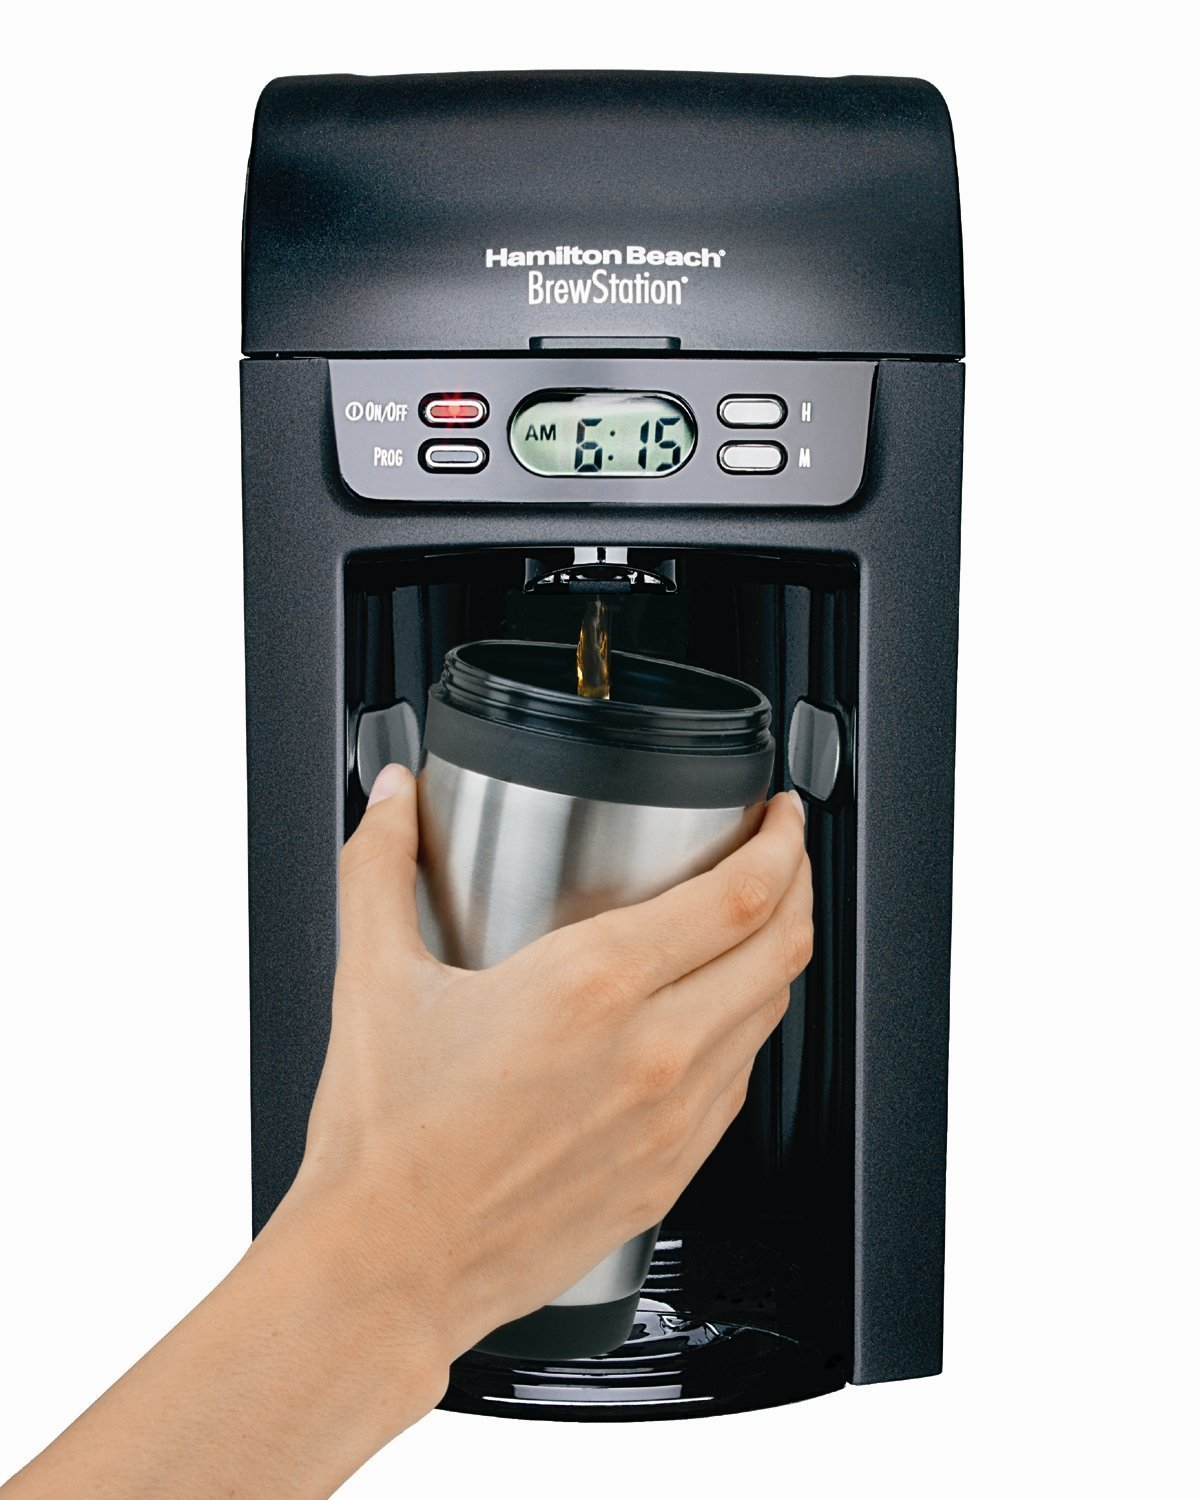 Hamilton Beach Coffee Maker 48274: 6 Cups Filled With Flavor